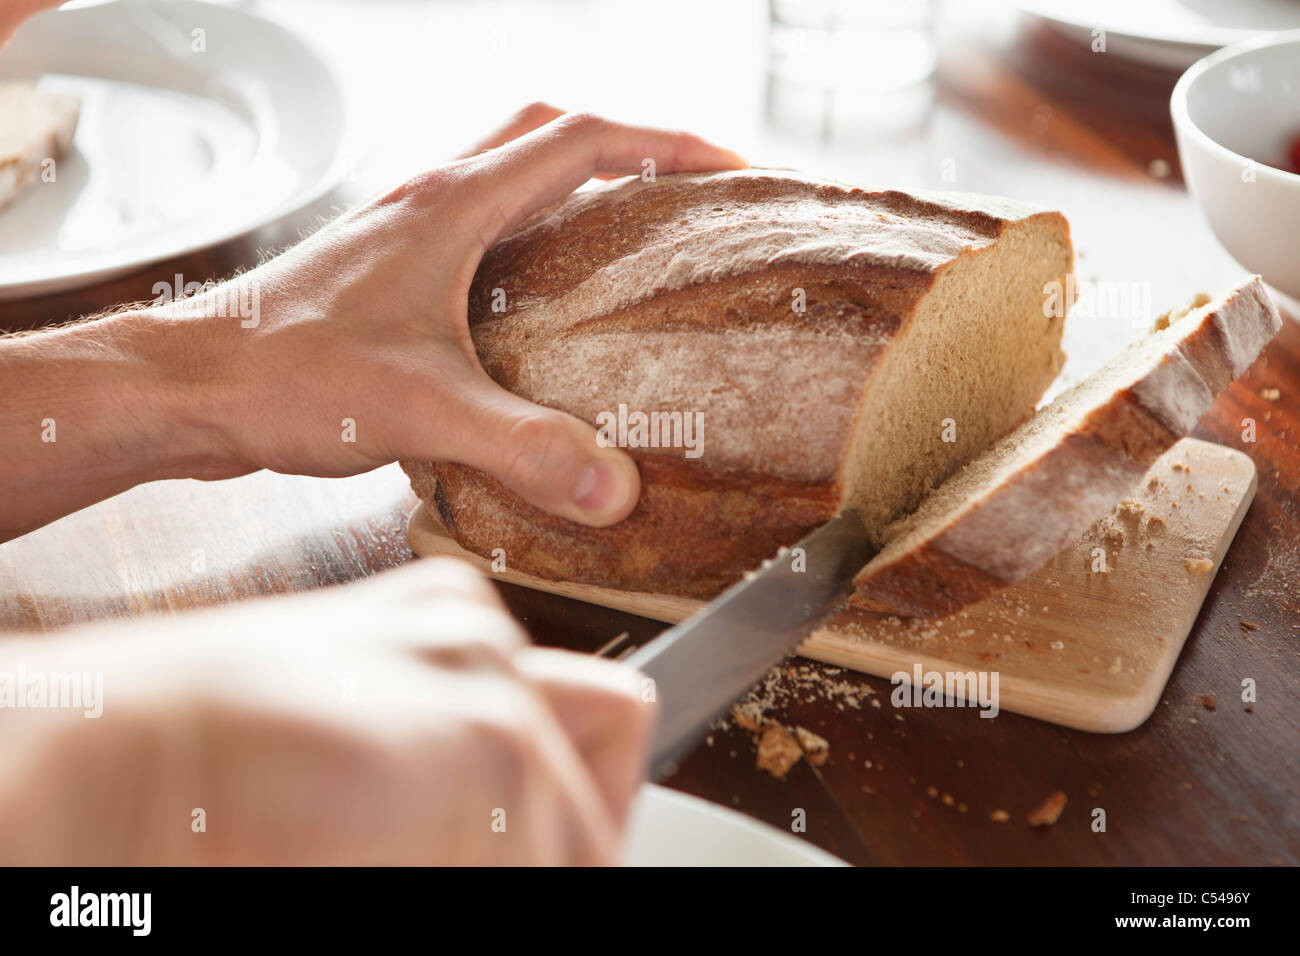 Close-up of a person's hand cutting bread - Stock Image